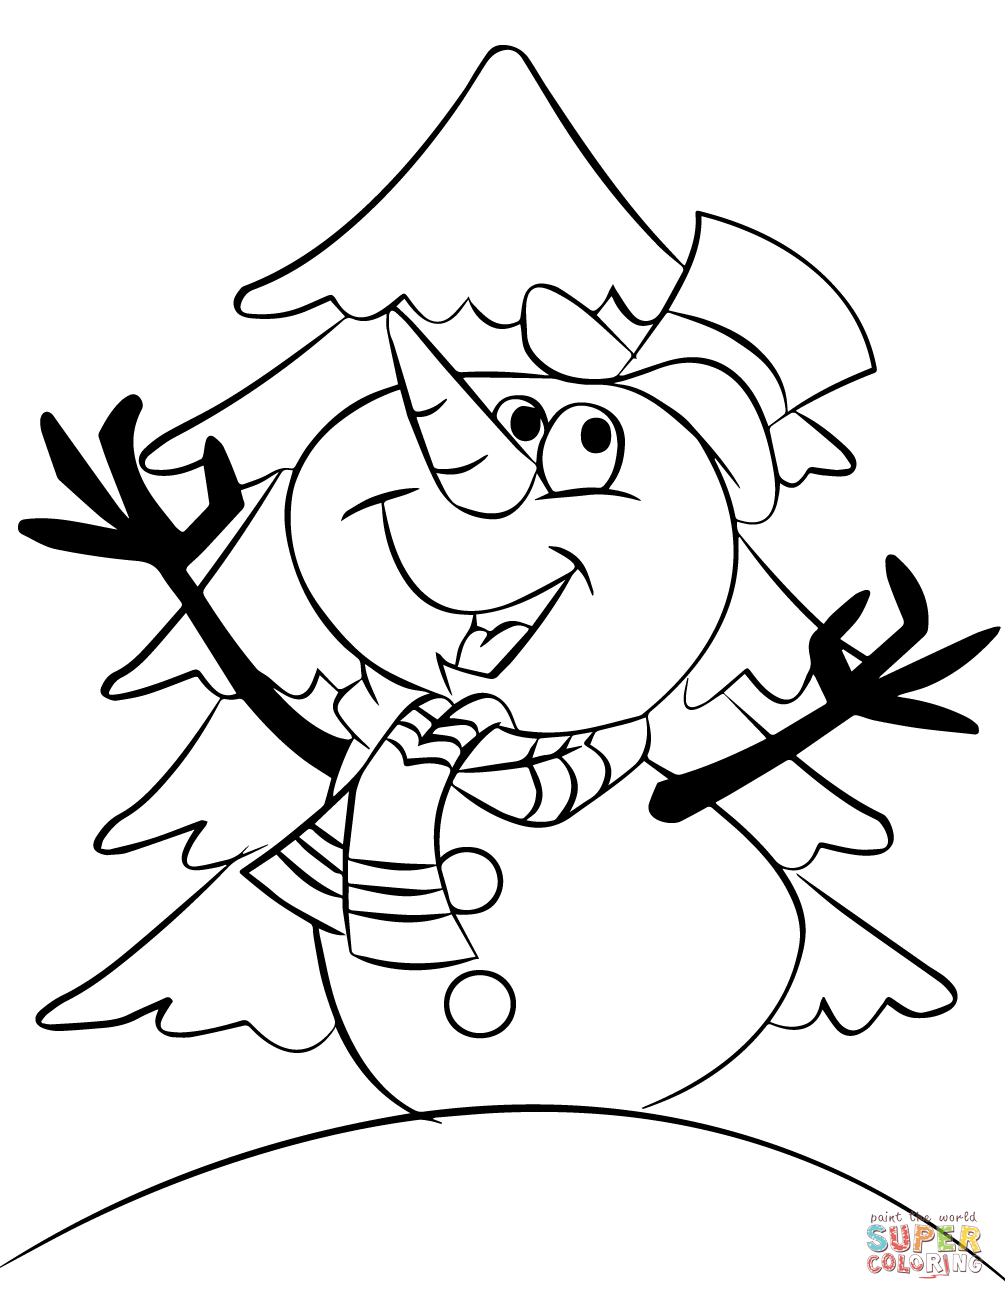 blank snowman coloring pages at getcolorings free